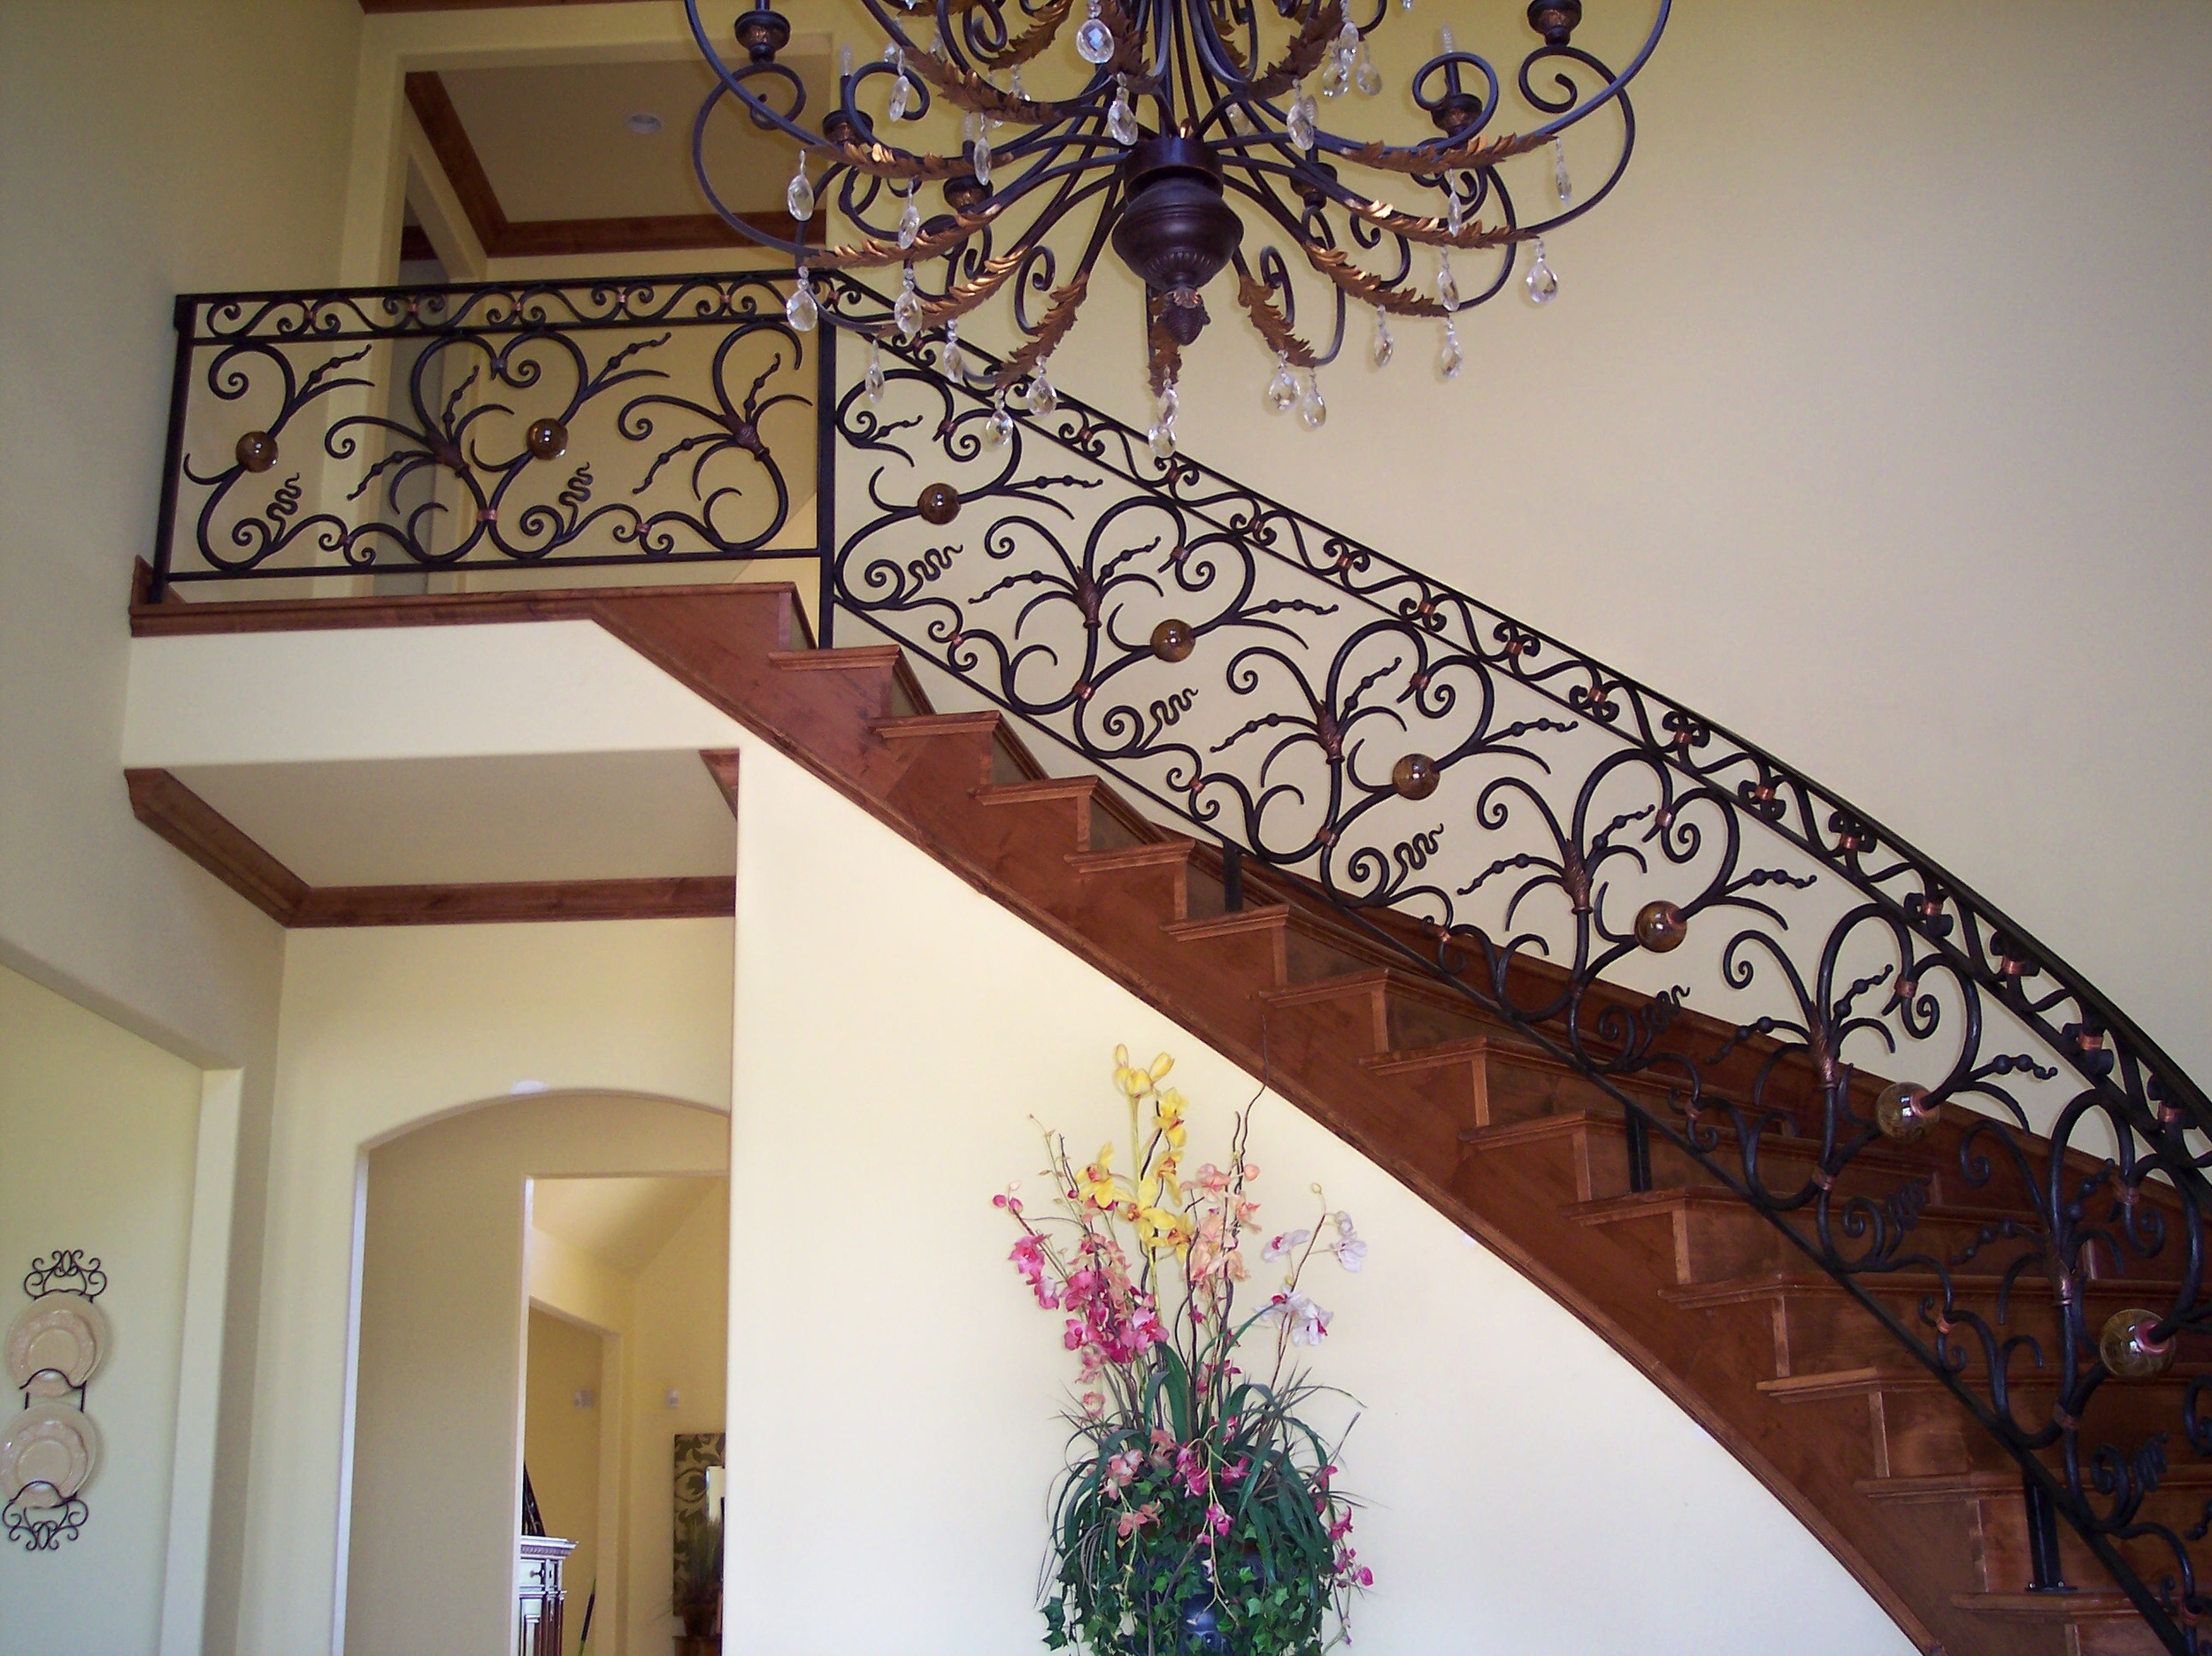 Forged Railing with Blown glass beads and Copper Leafs